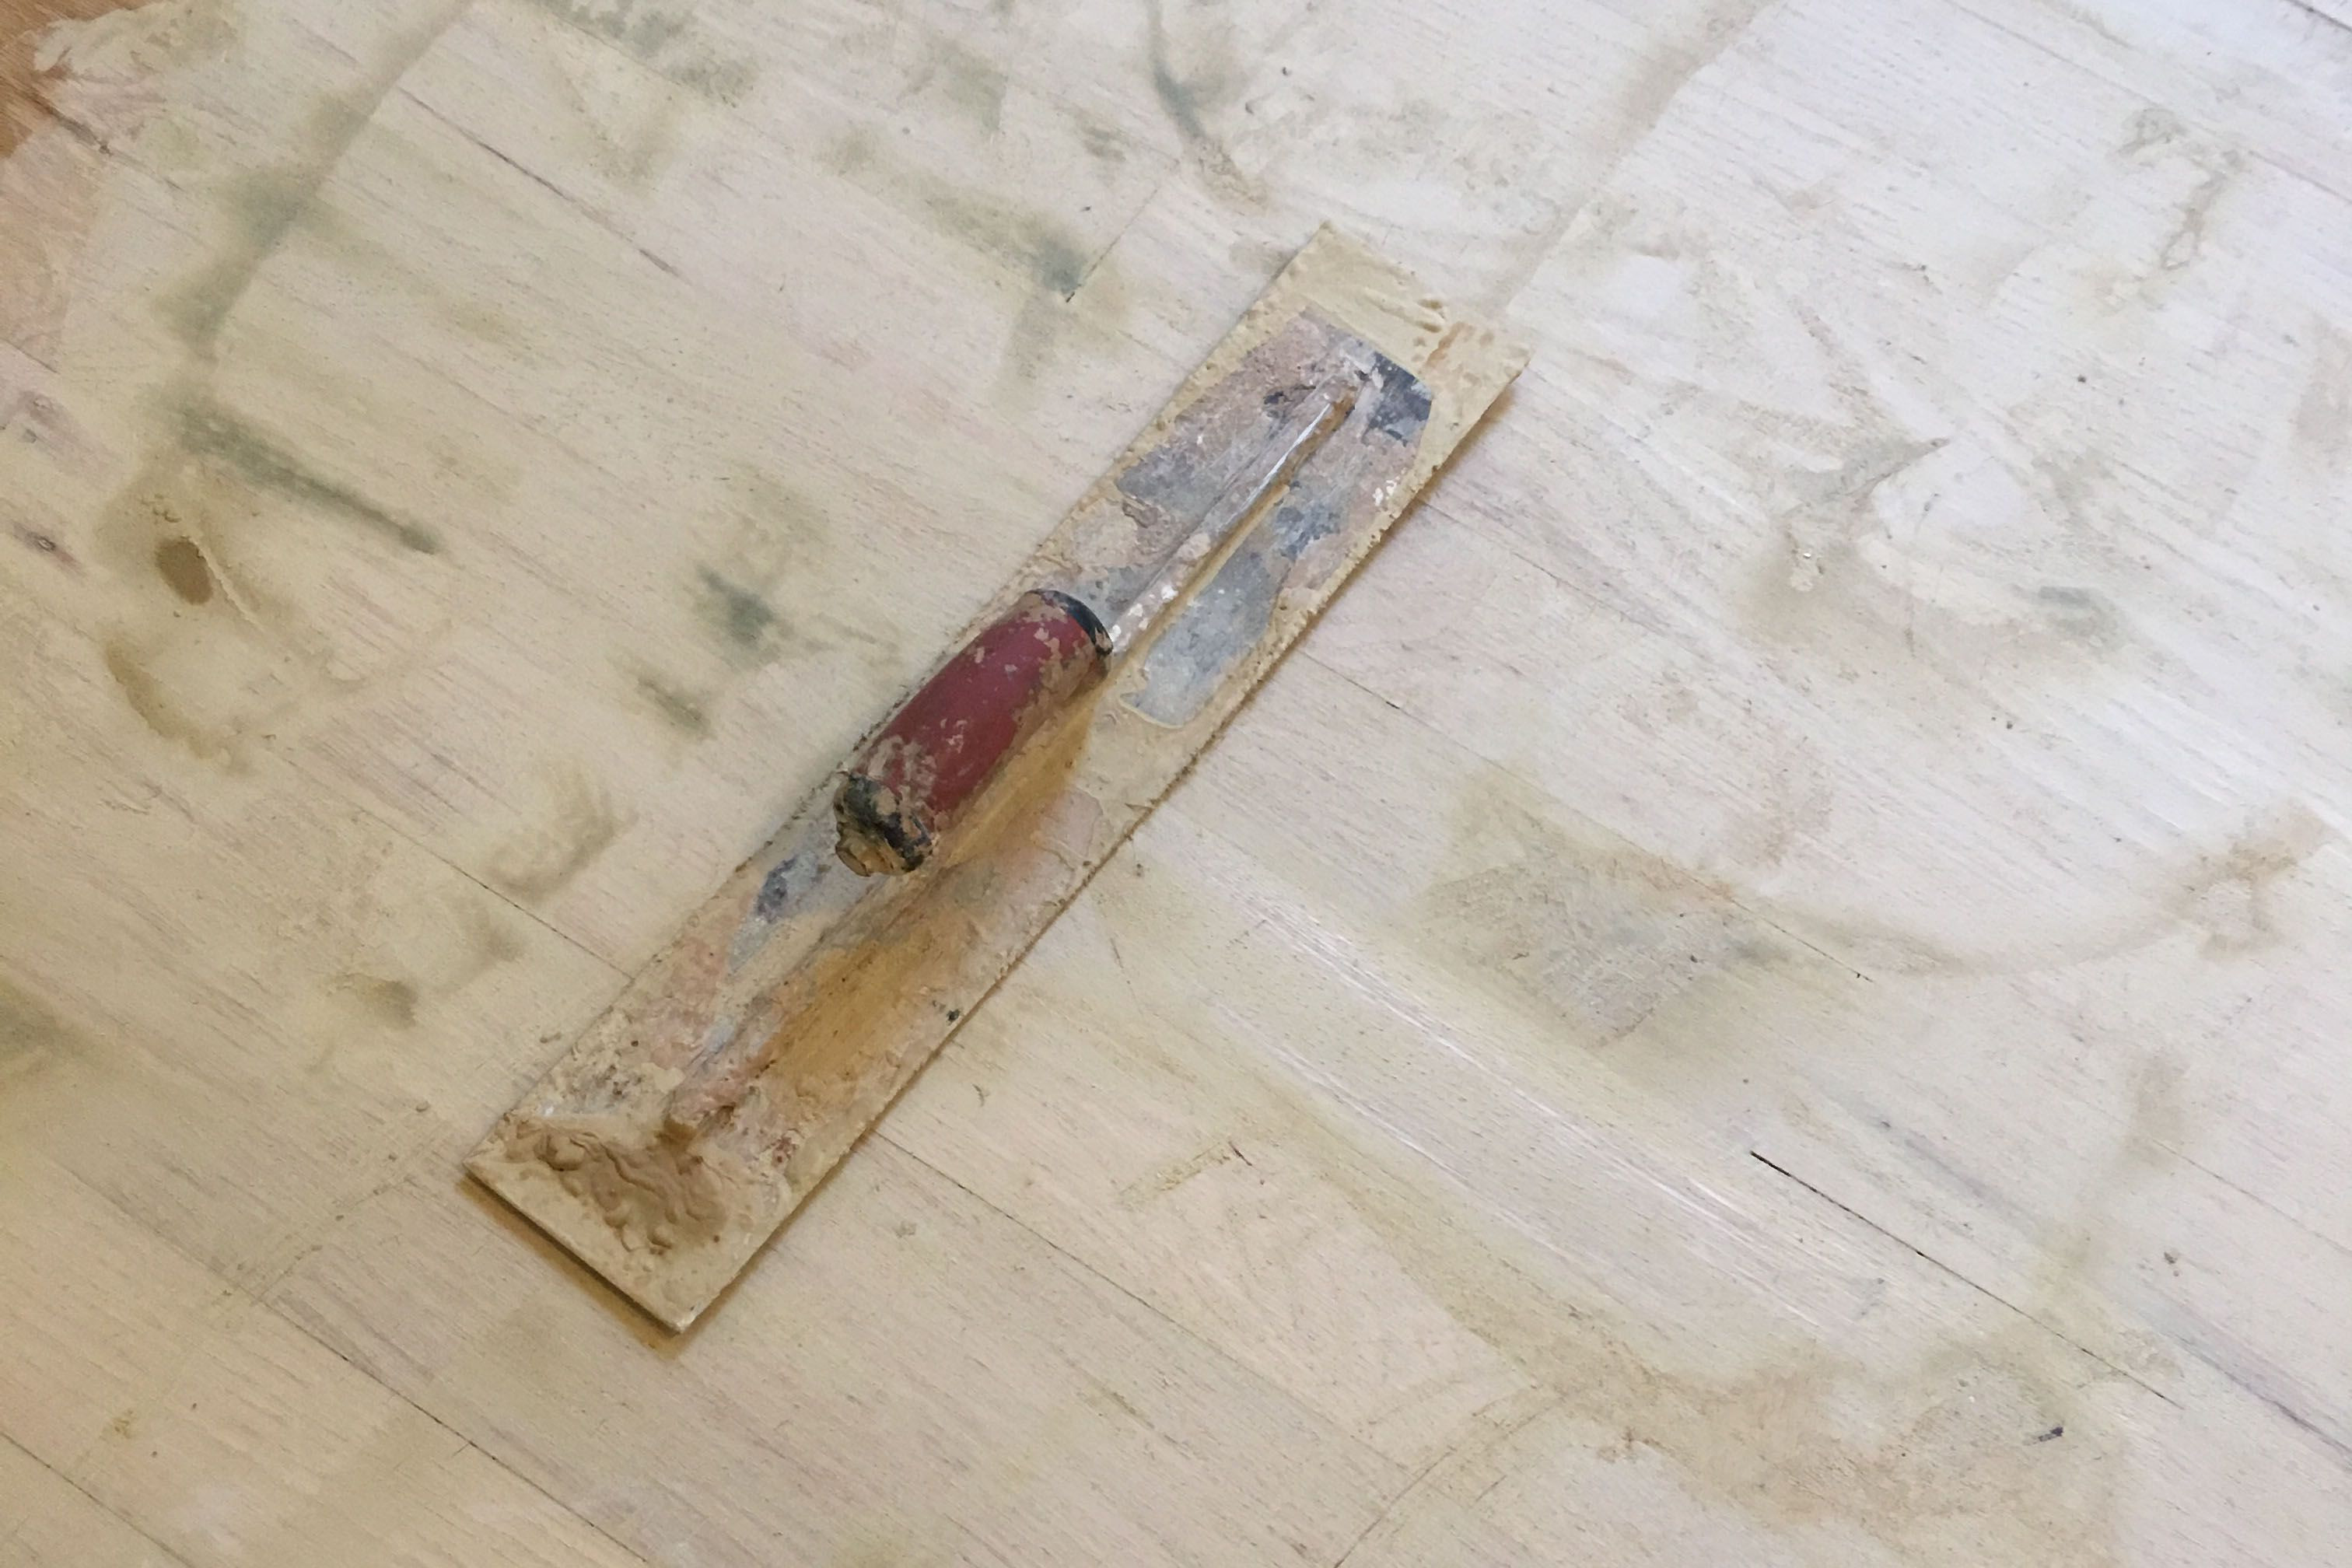 hardwood floor care scratches of 7 things to know before you refinish hardwood floors within trough hardwood floor manhattan avenue via smallspaces about com 579138783df78c173490f8a5